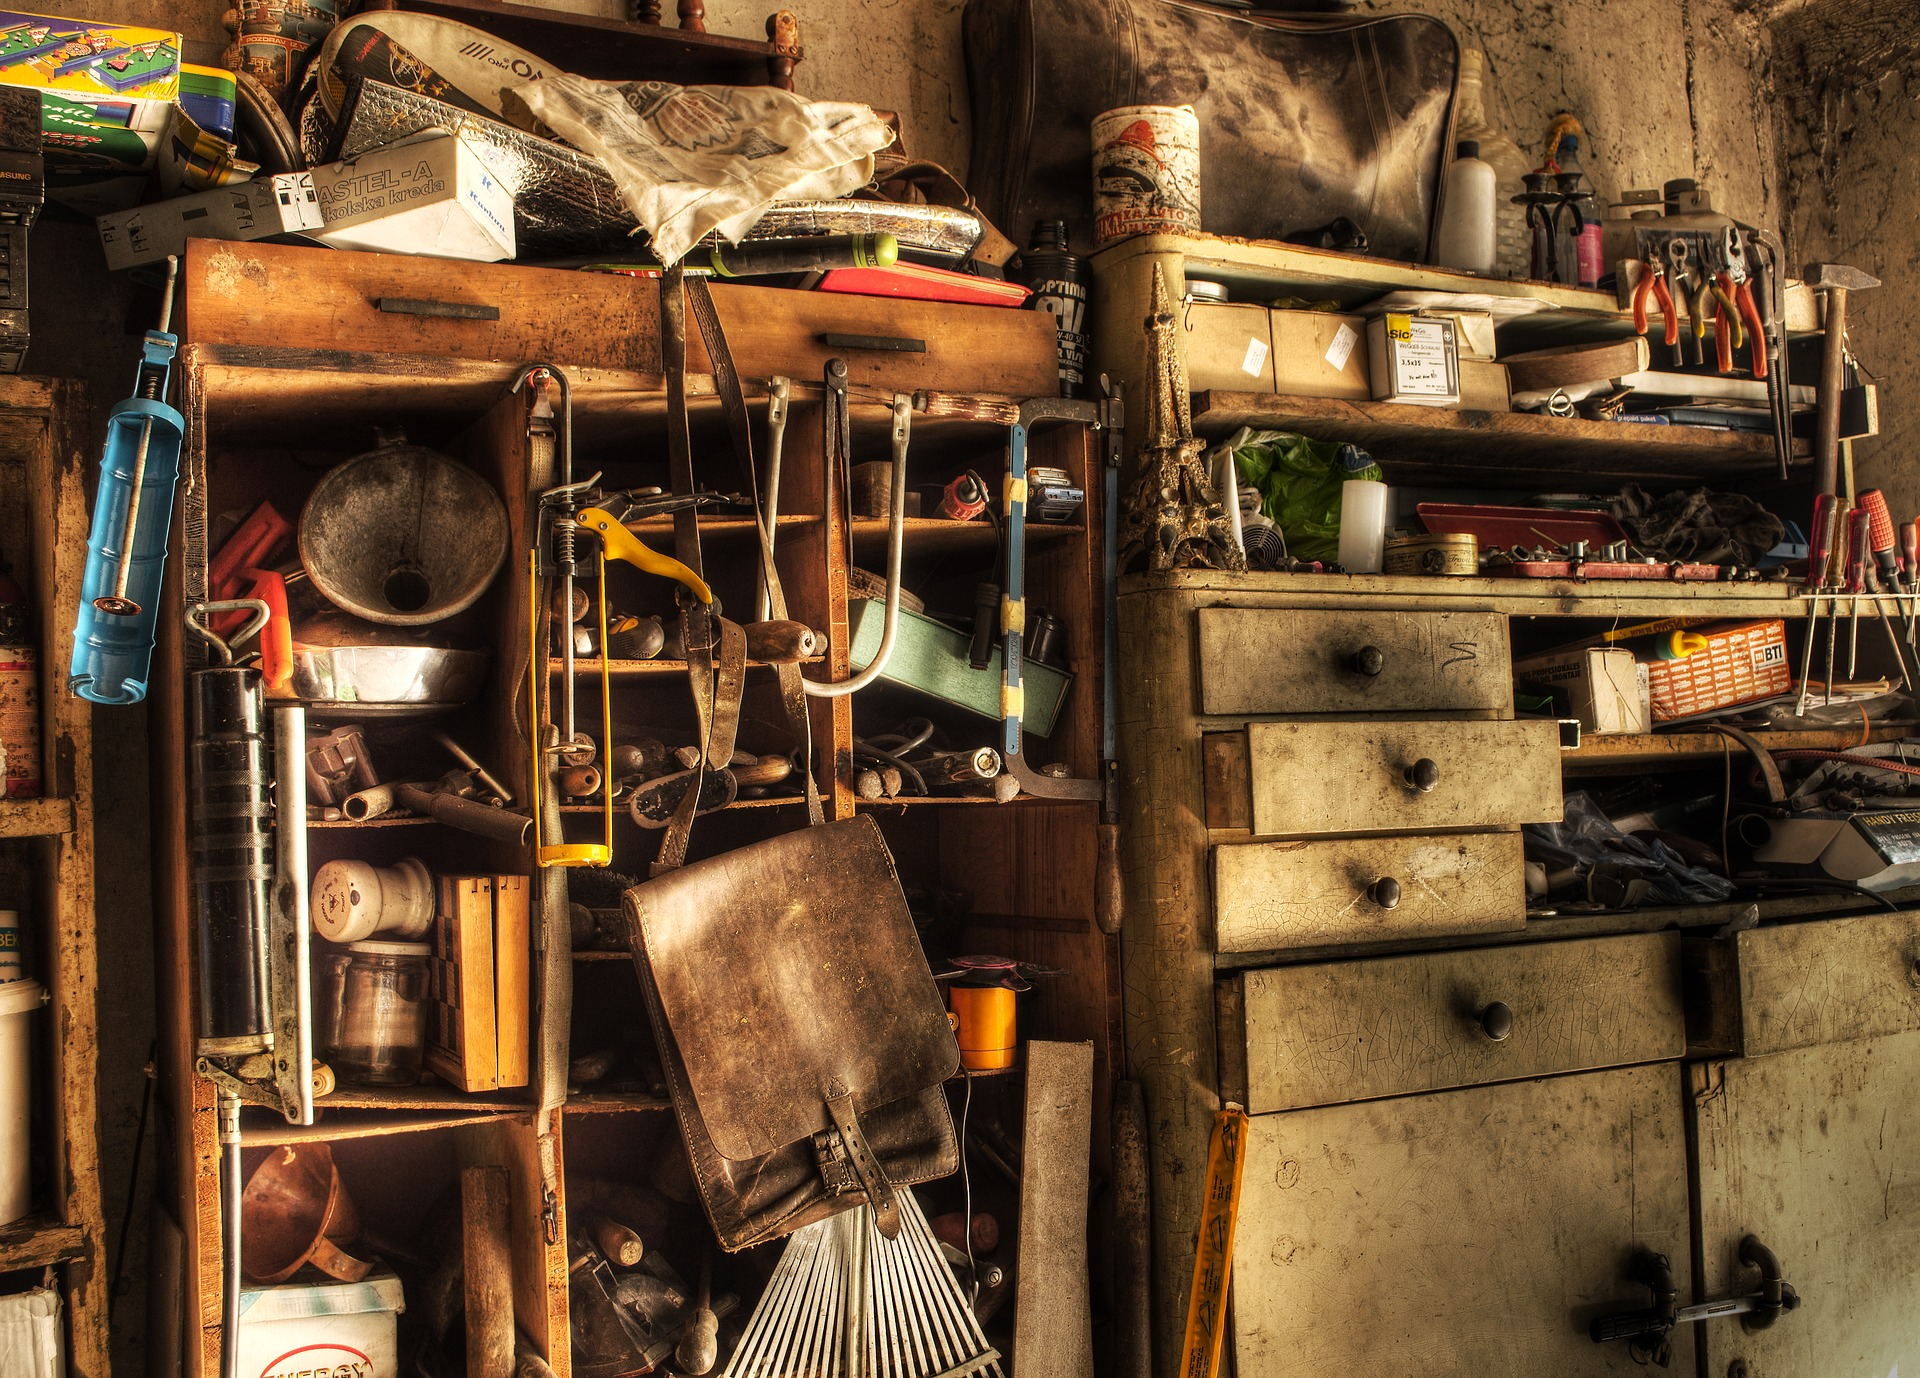 Hoarding Cleanup Photo by Deedee86 on Pixabay